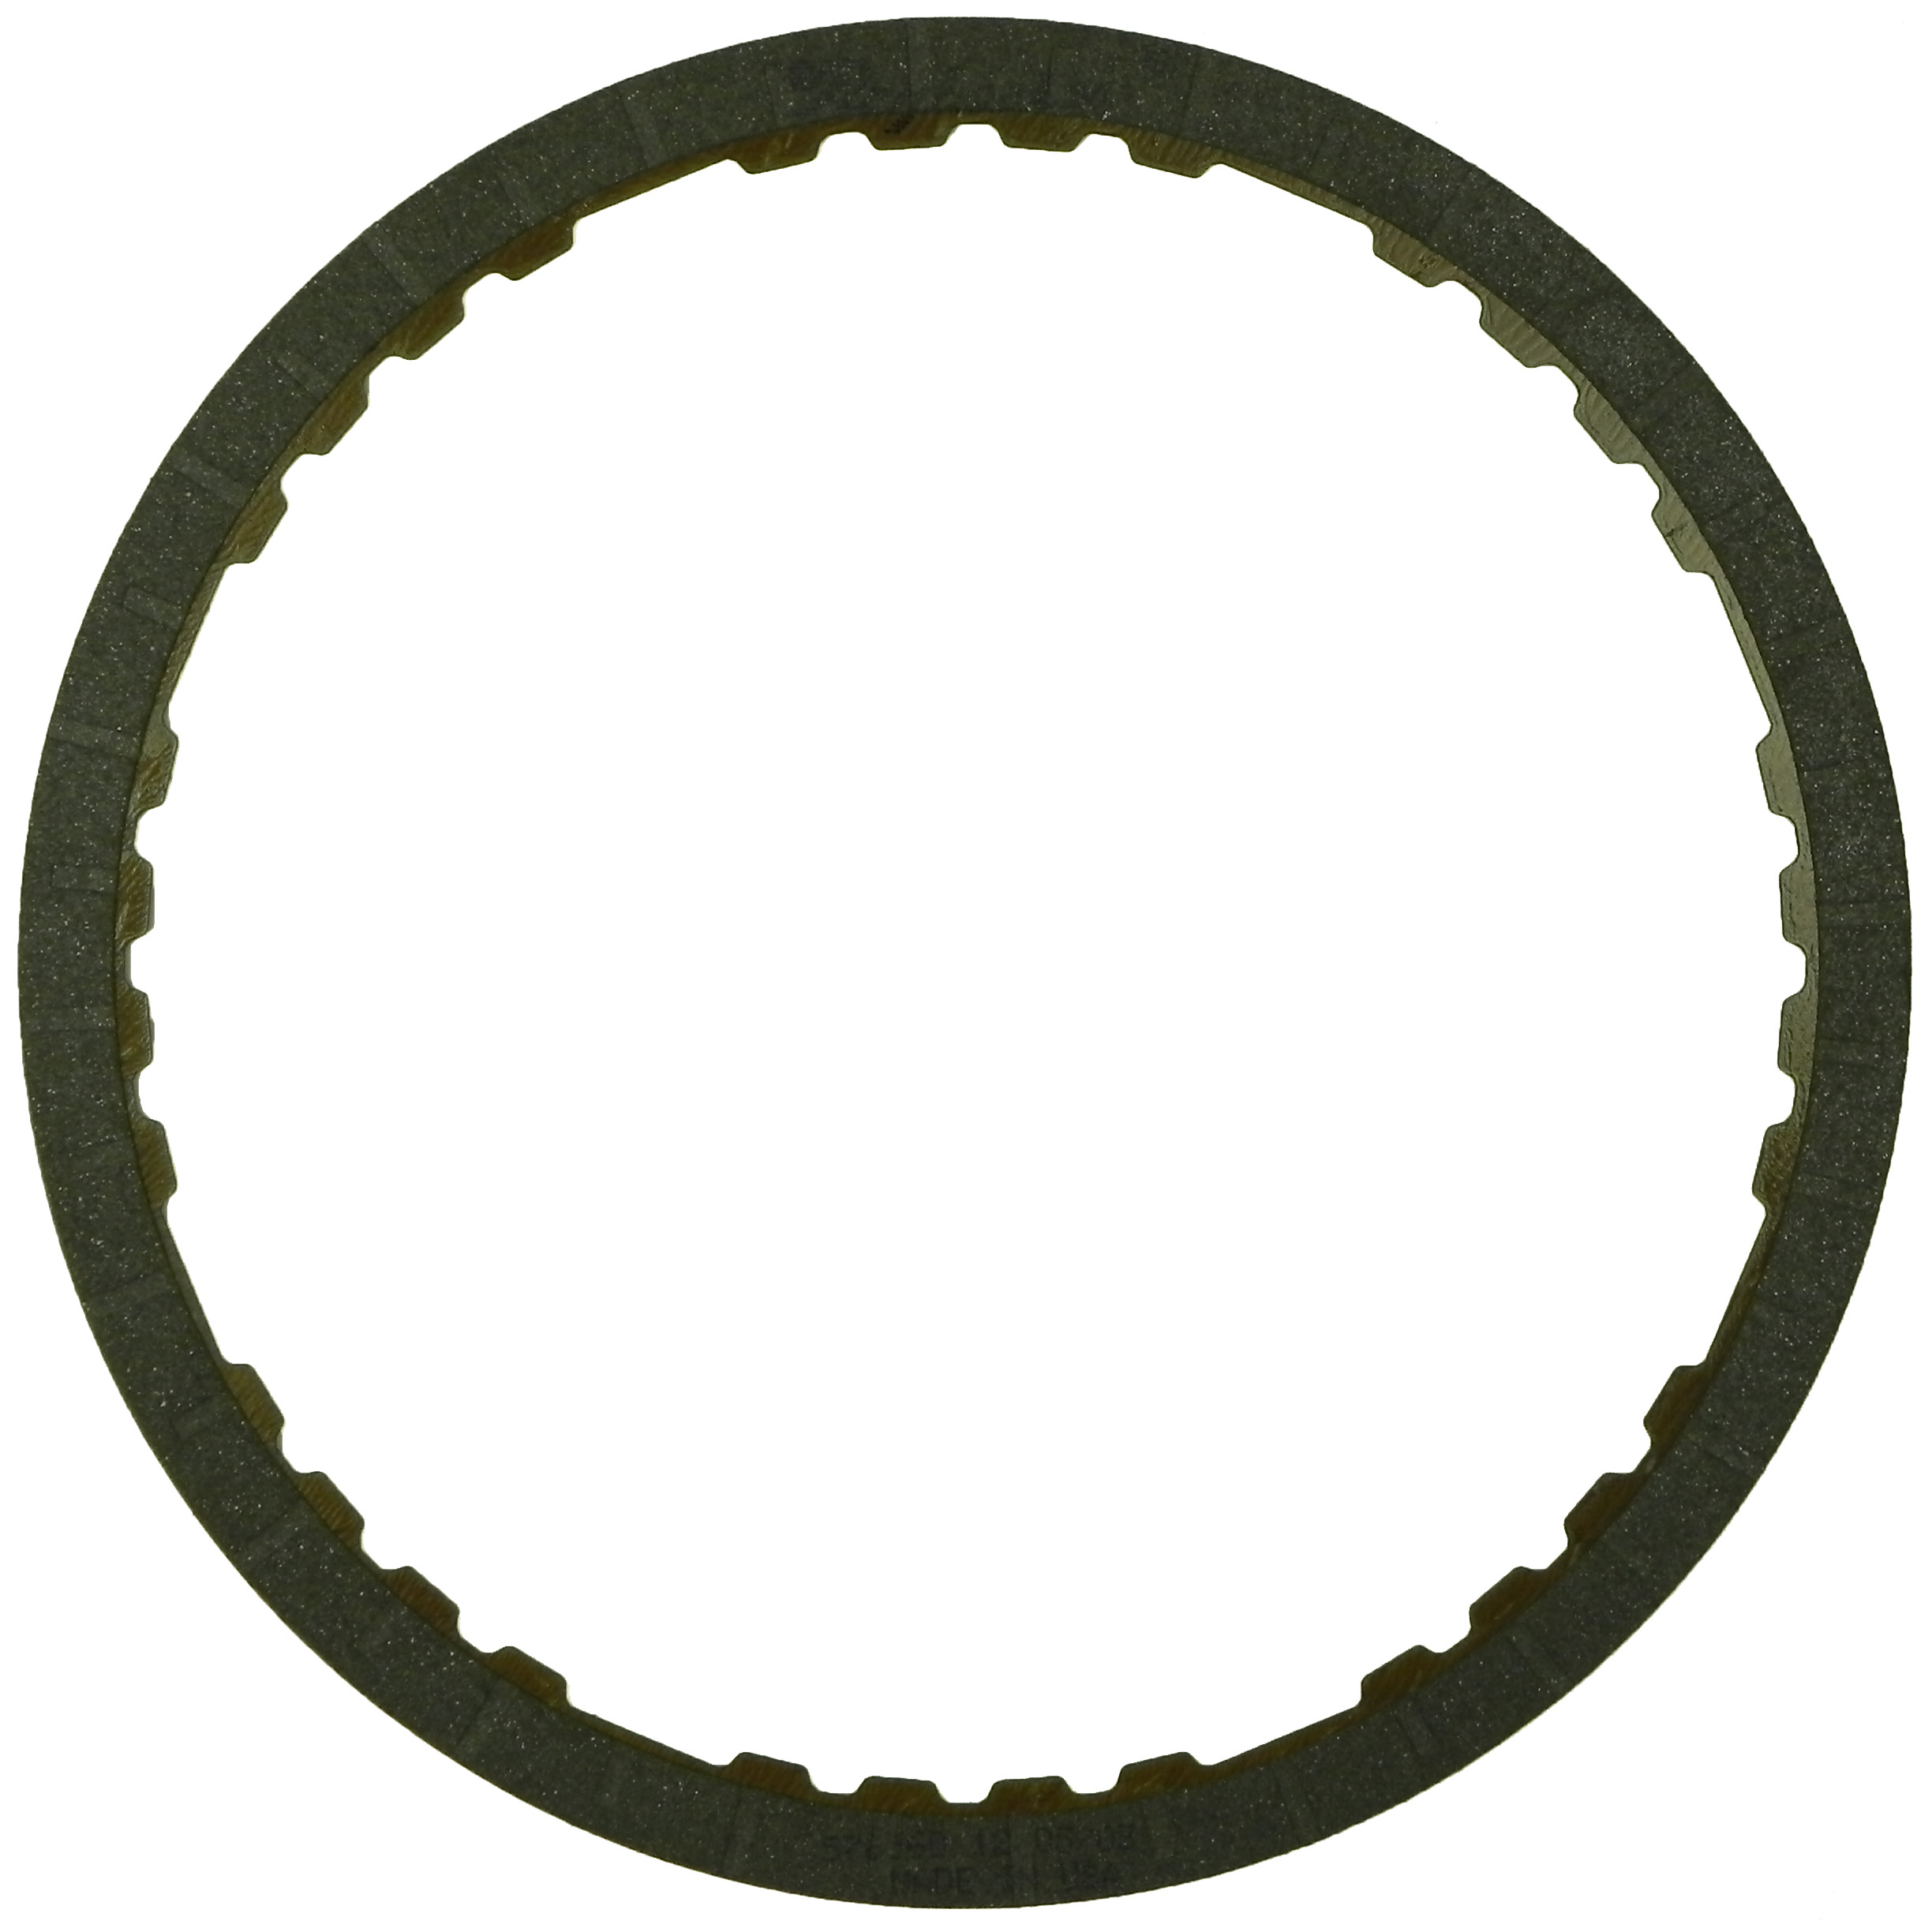 R576560 | 1999-ON Friction Clutch Plate OE Replacement B2 2nd Brake